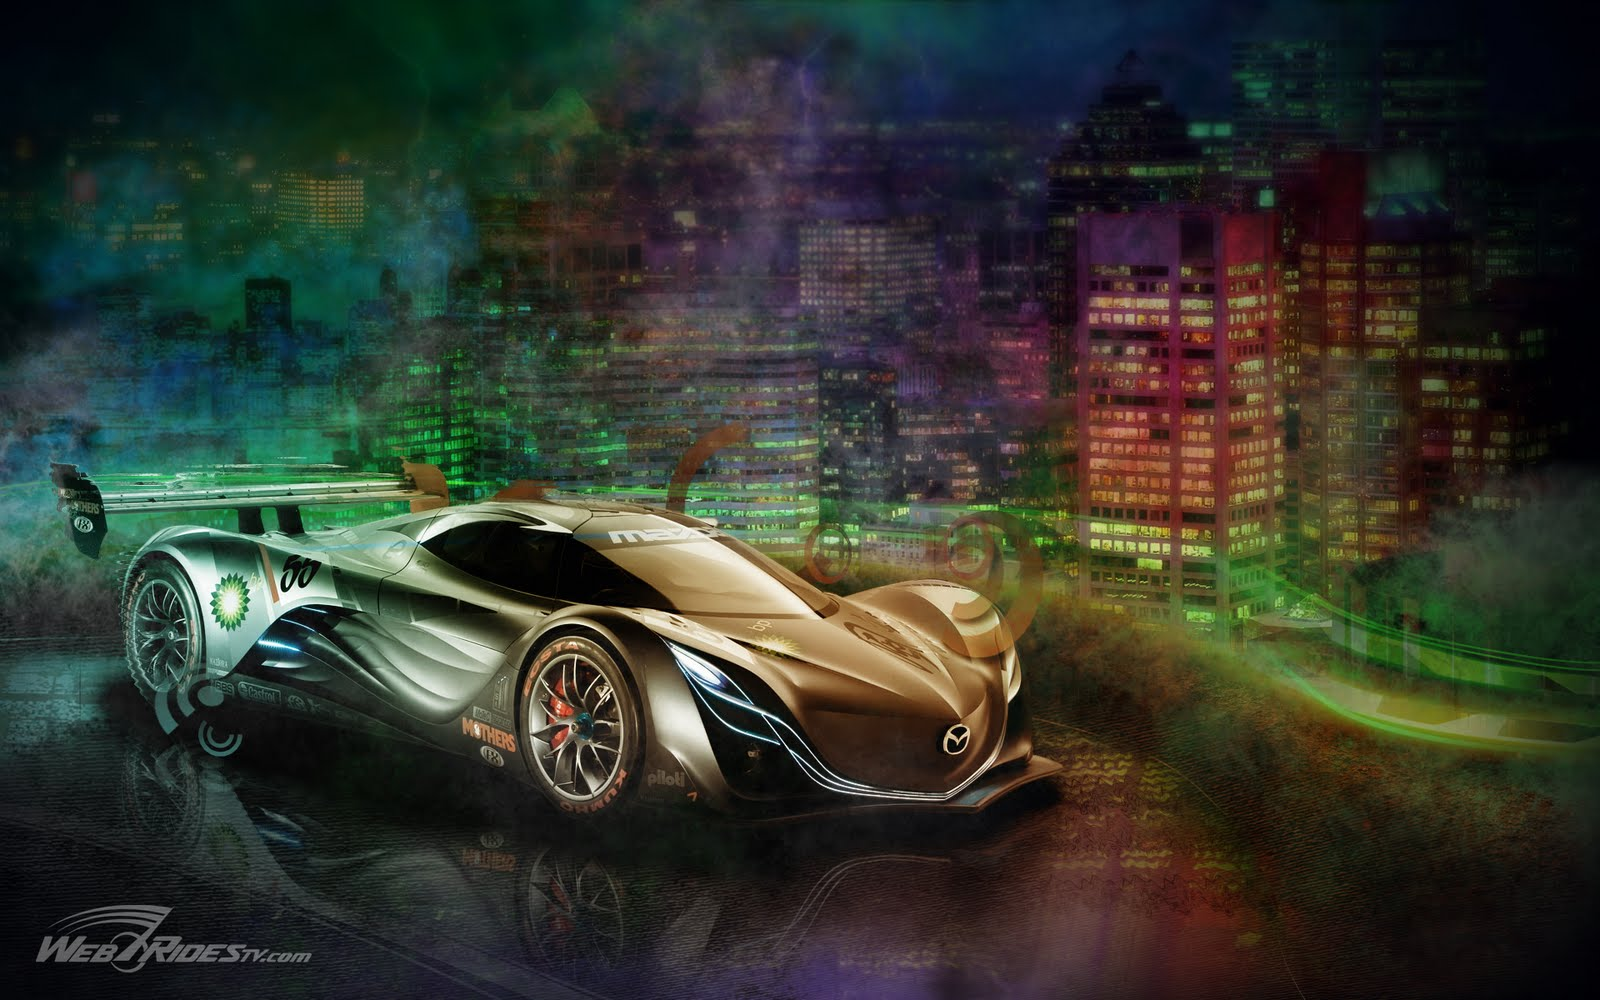 Amazing Stylish And Expensive Racing Cars Hd Wallpapers: Amazing Cars HD Wallpapers ..